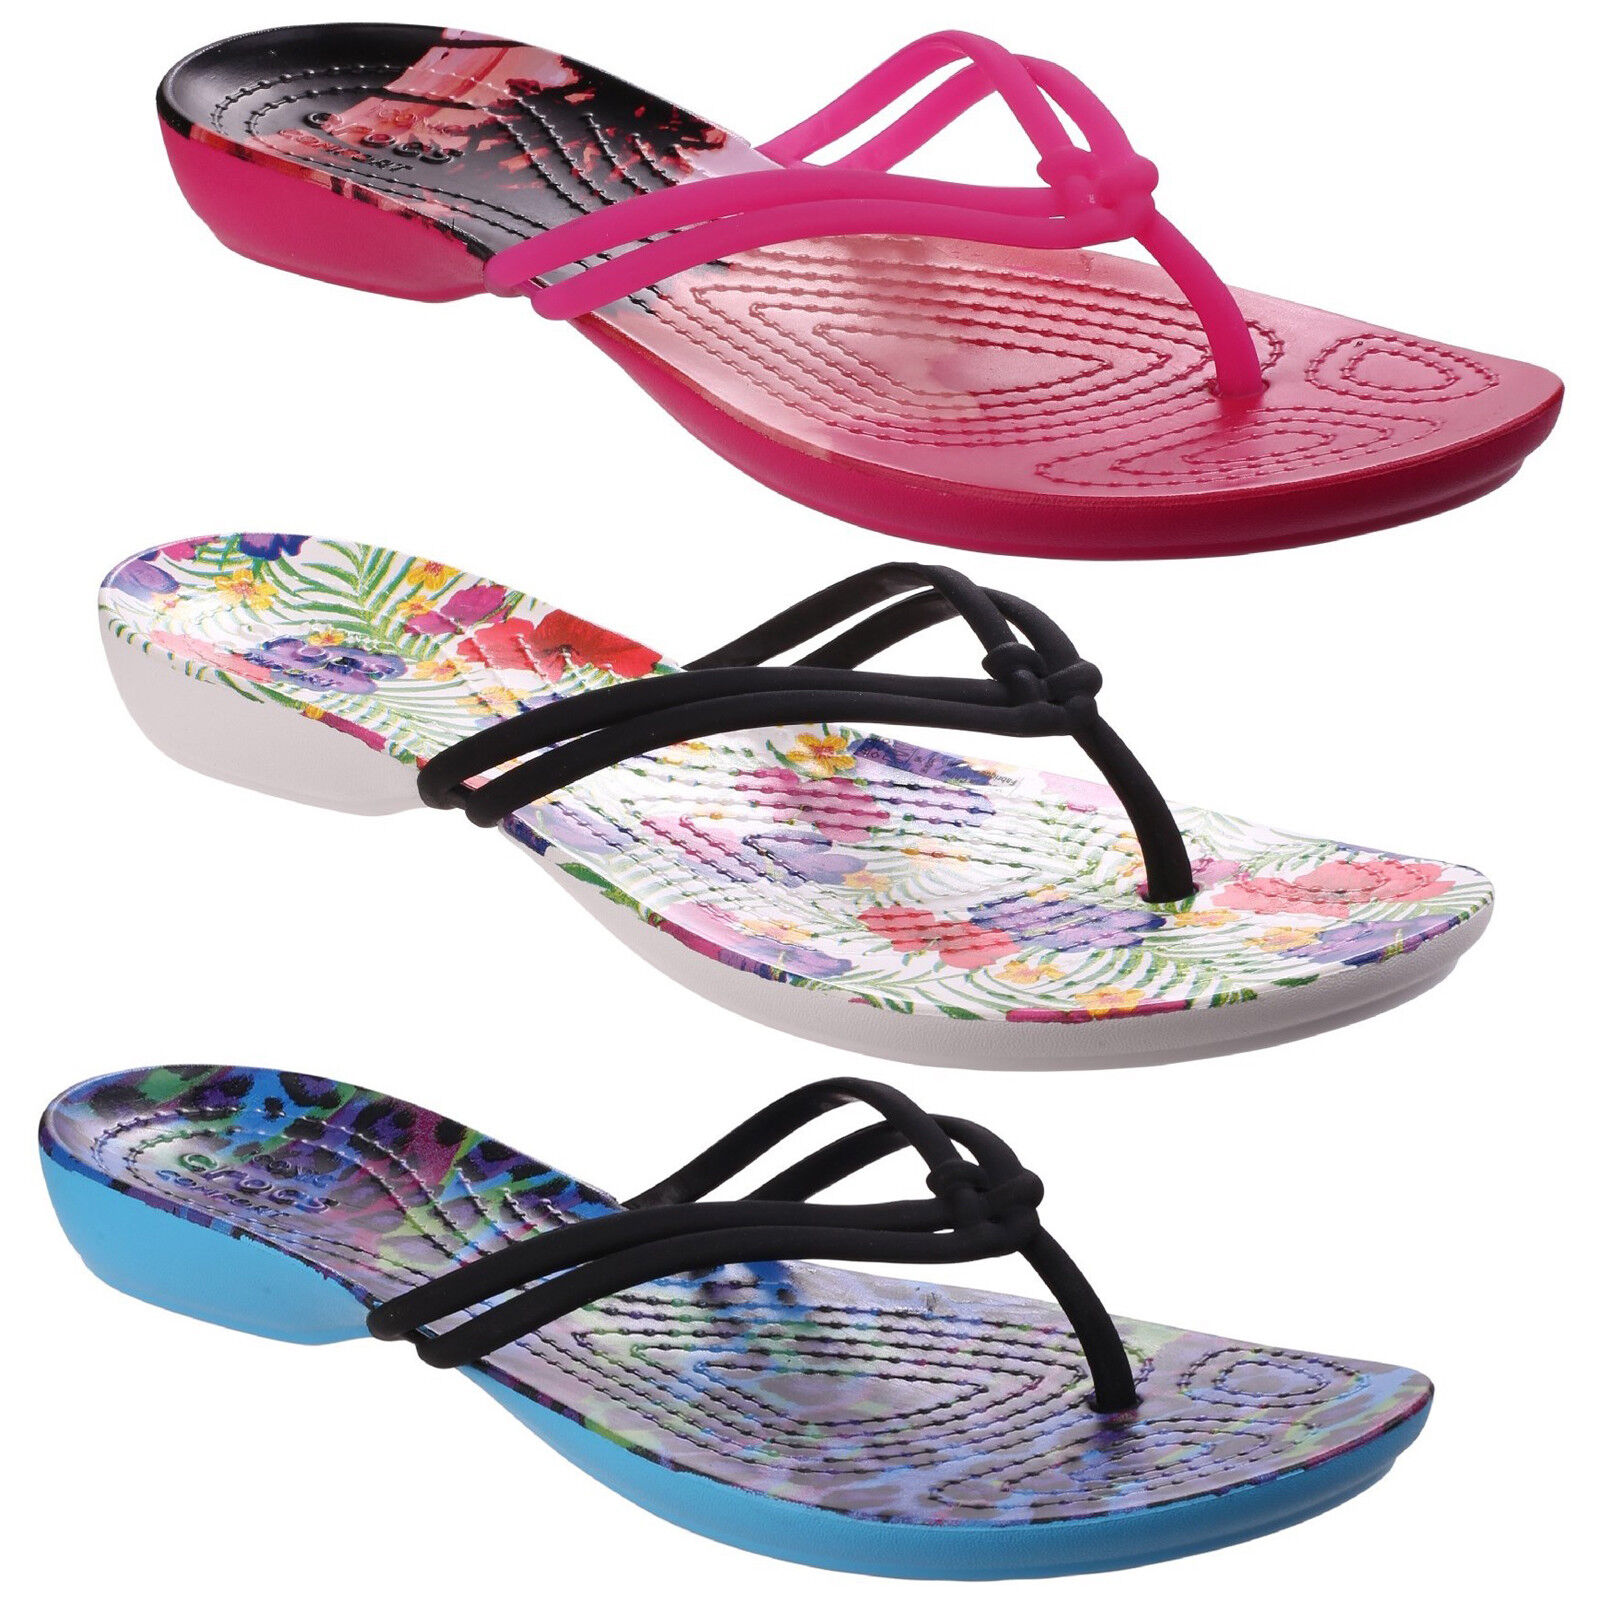 152bc4f92 Crocs Isabella Graphic Flip Flops Womens Lightweight Croslite Toe Post  Sandals